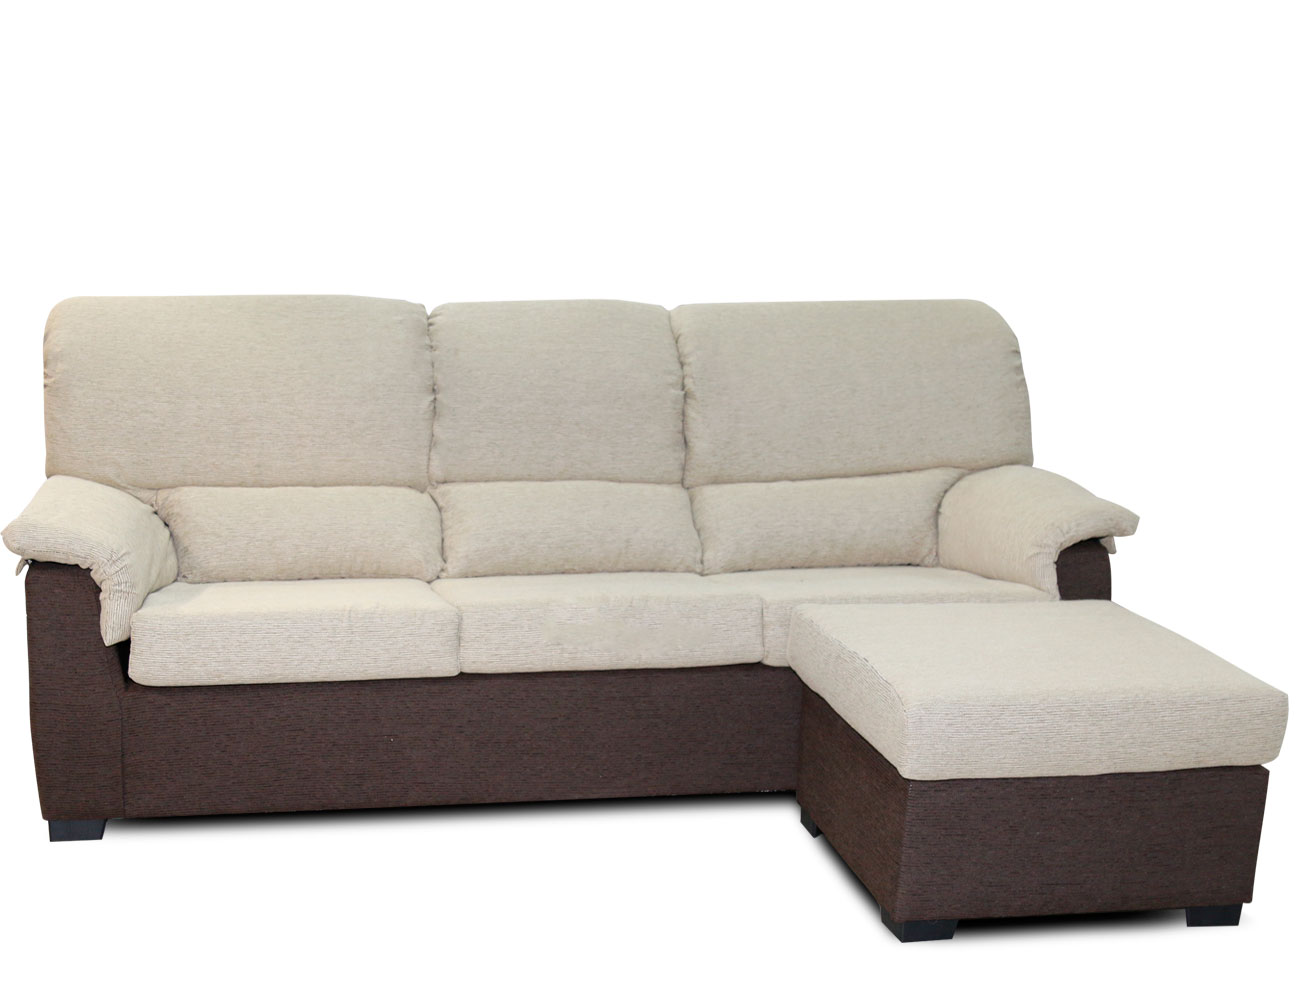 Sof chaiselongue barato con puf reversible 15285 for Muebles baratos